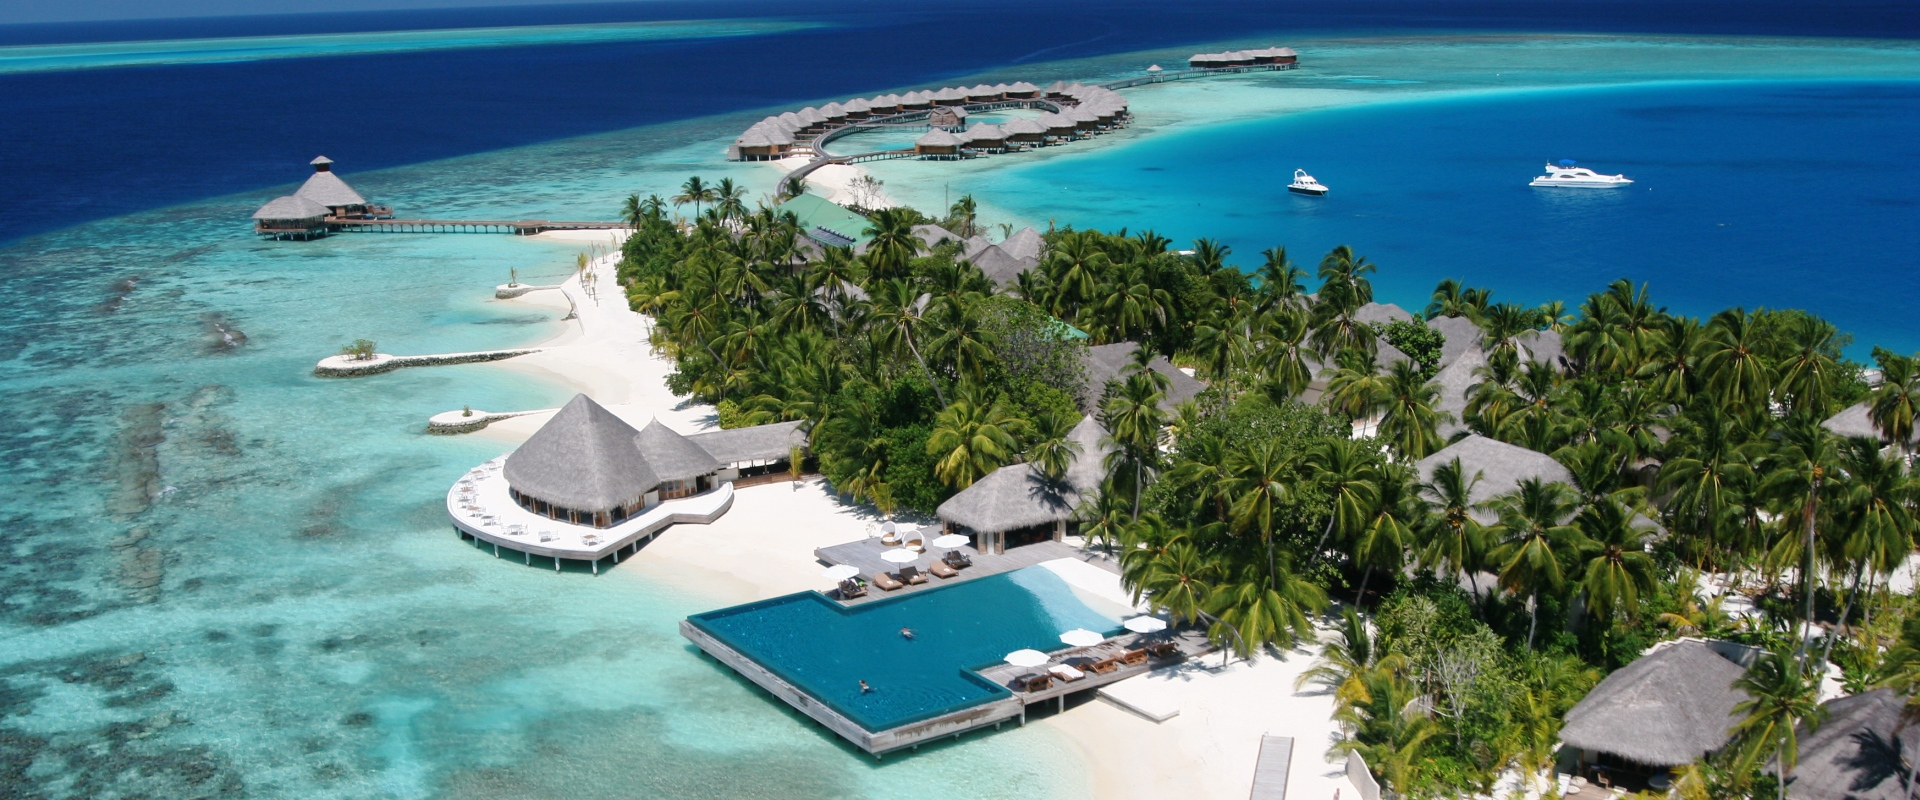 maldives8